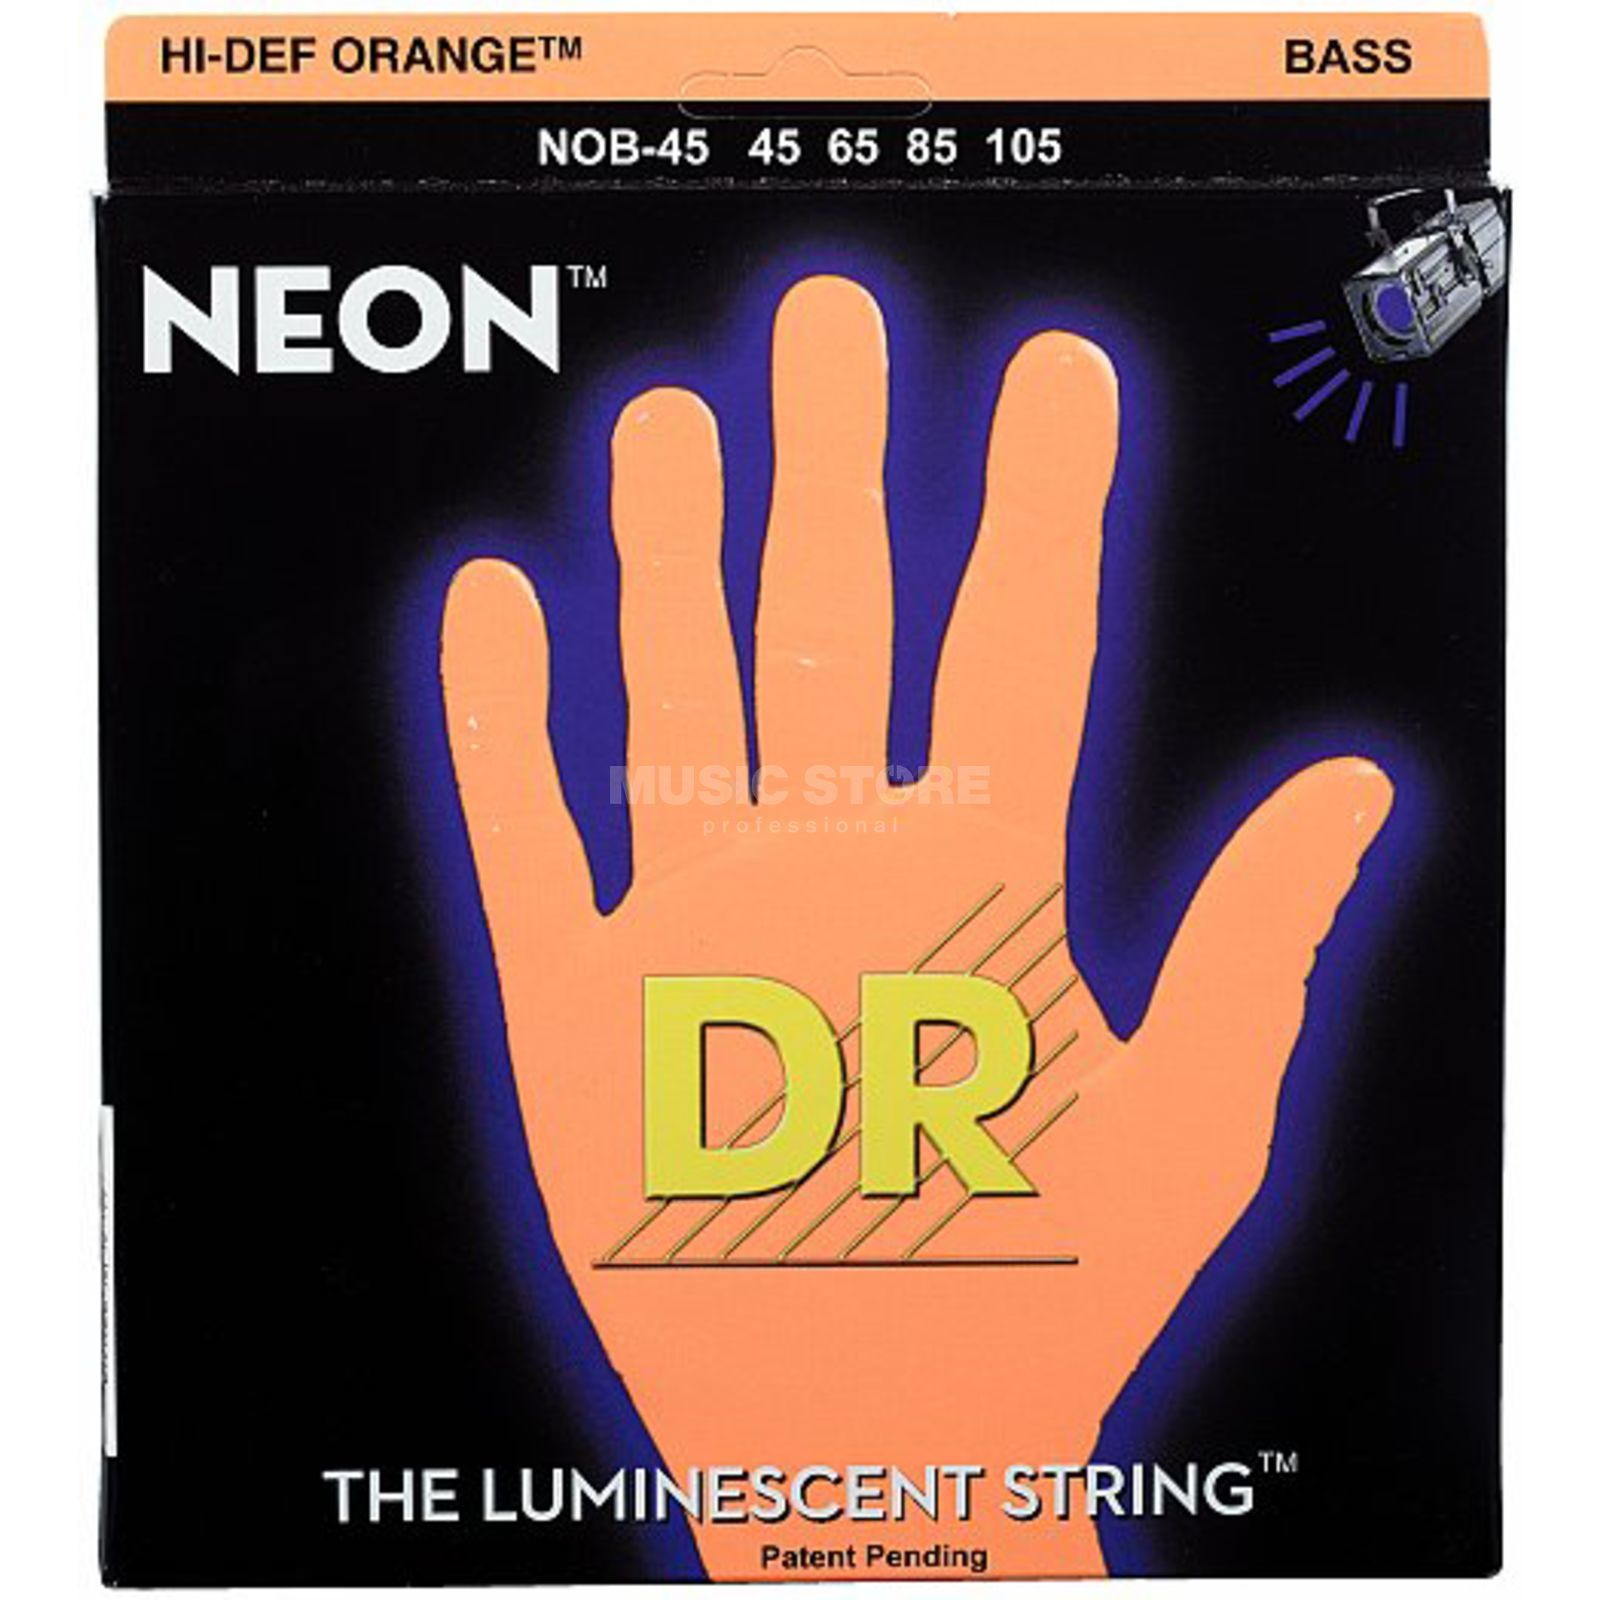 DR 4 Bass Strings 45-105 Hi-Def Neon Orange Neon NOB-45 Product Image